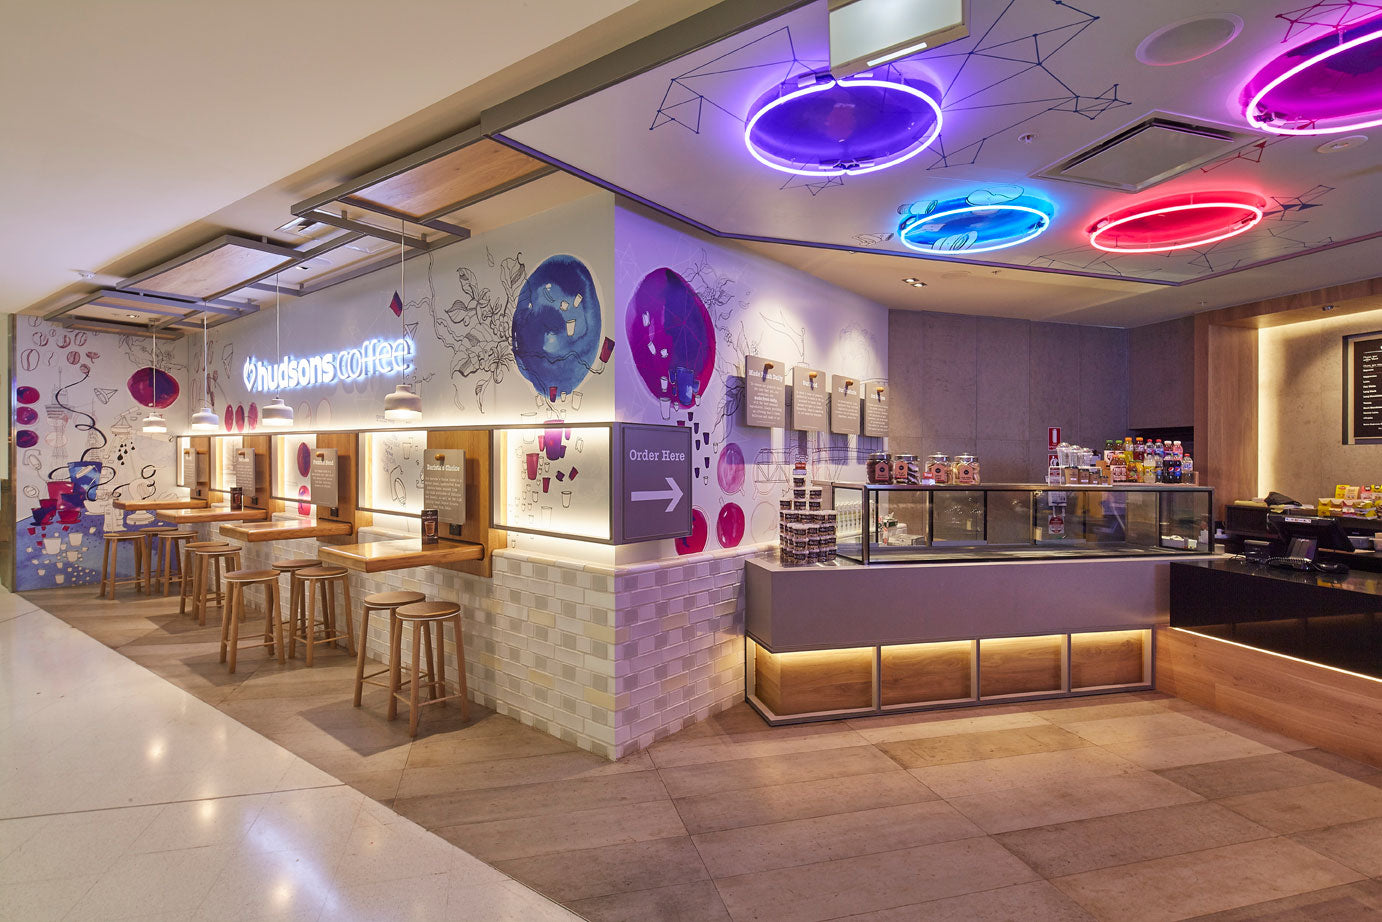 Relm furniture's Crop Bar stools featured in the retail fitout for Hudsons Coffee at Sydney international Airport.